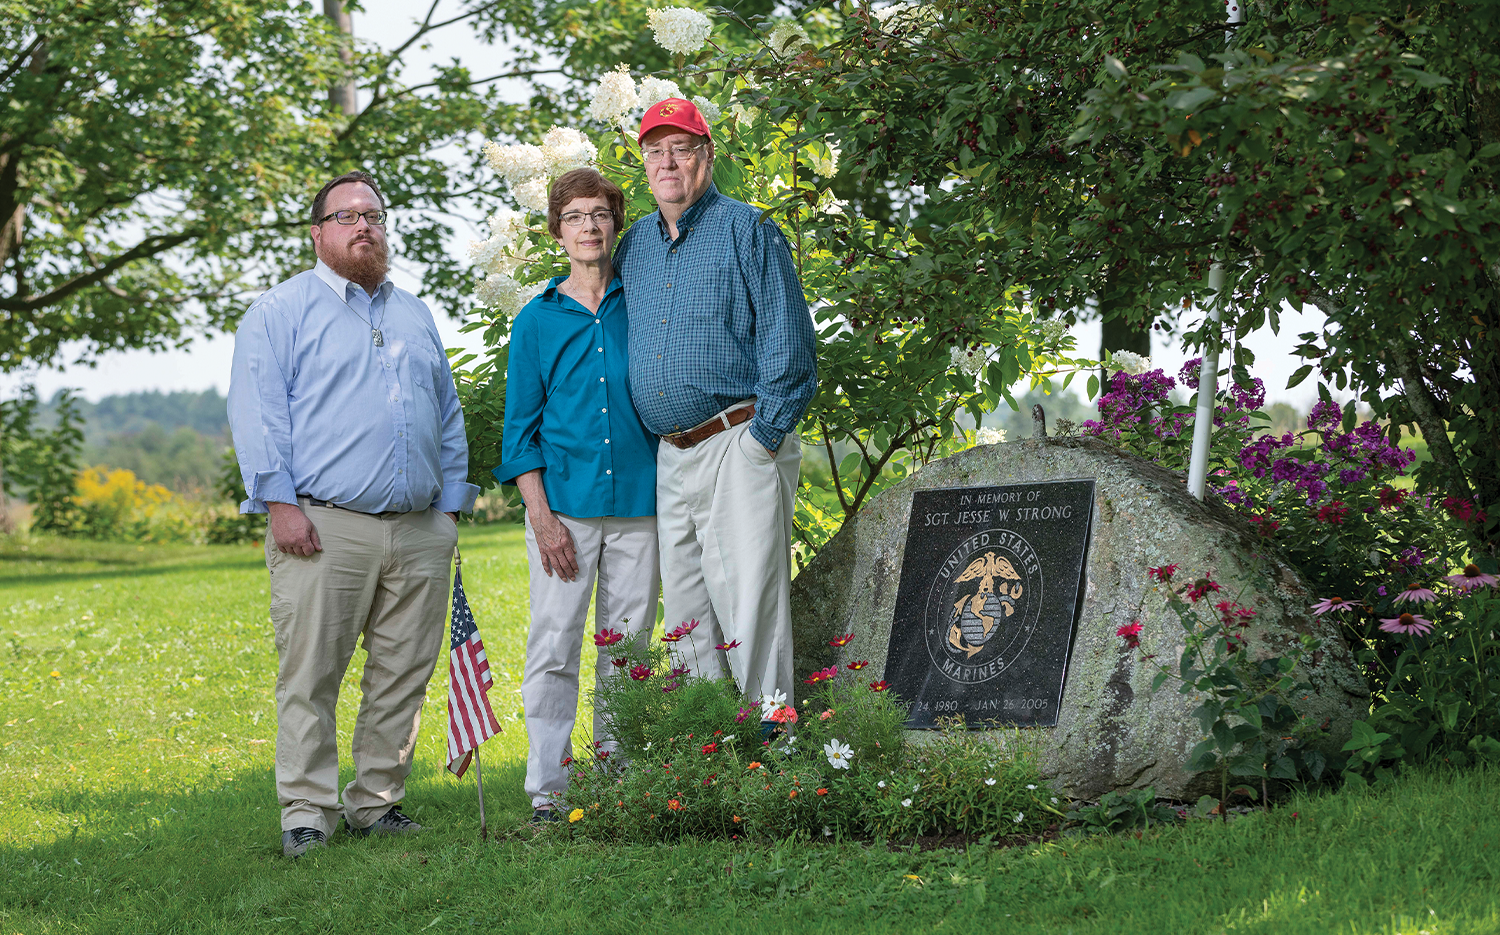 Matthew Strong and his parents, Vicki and Nate, stand next to a memorial at their home dedicated to Matthew's brother Jesse, who was killed in action in 2005.